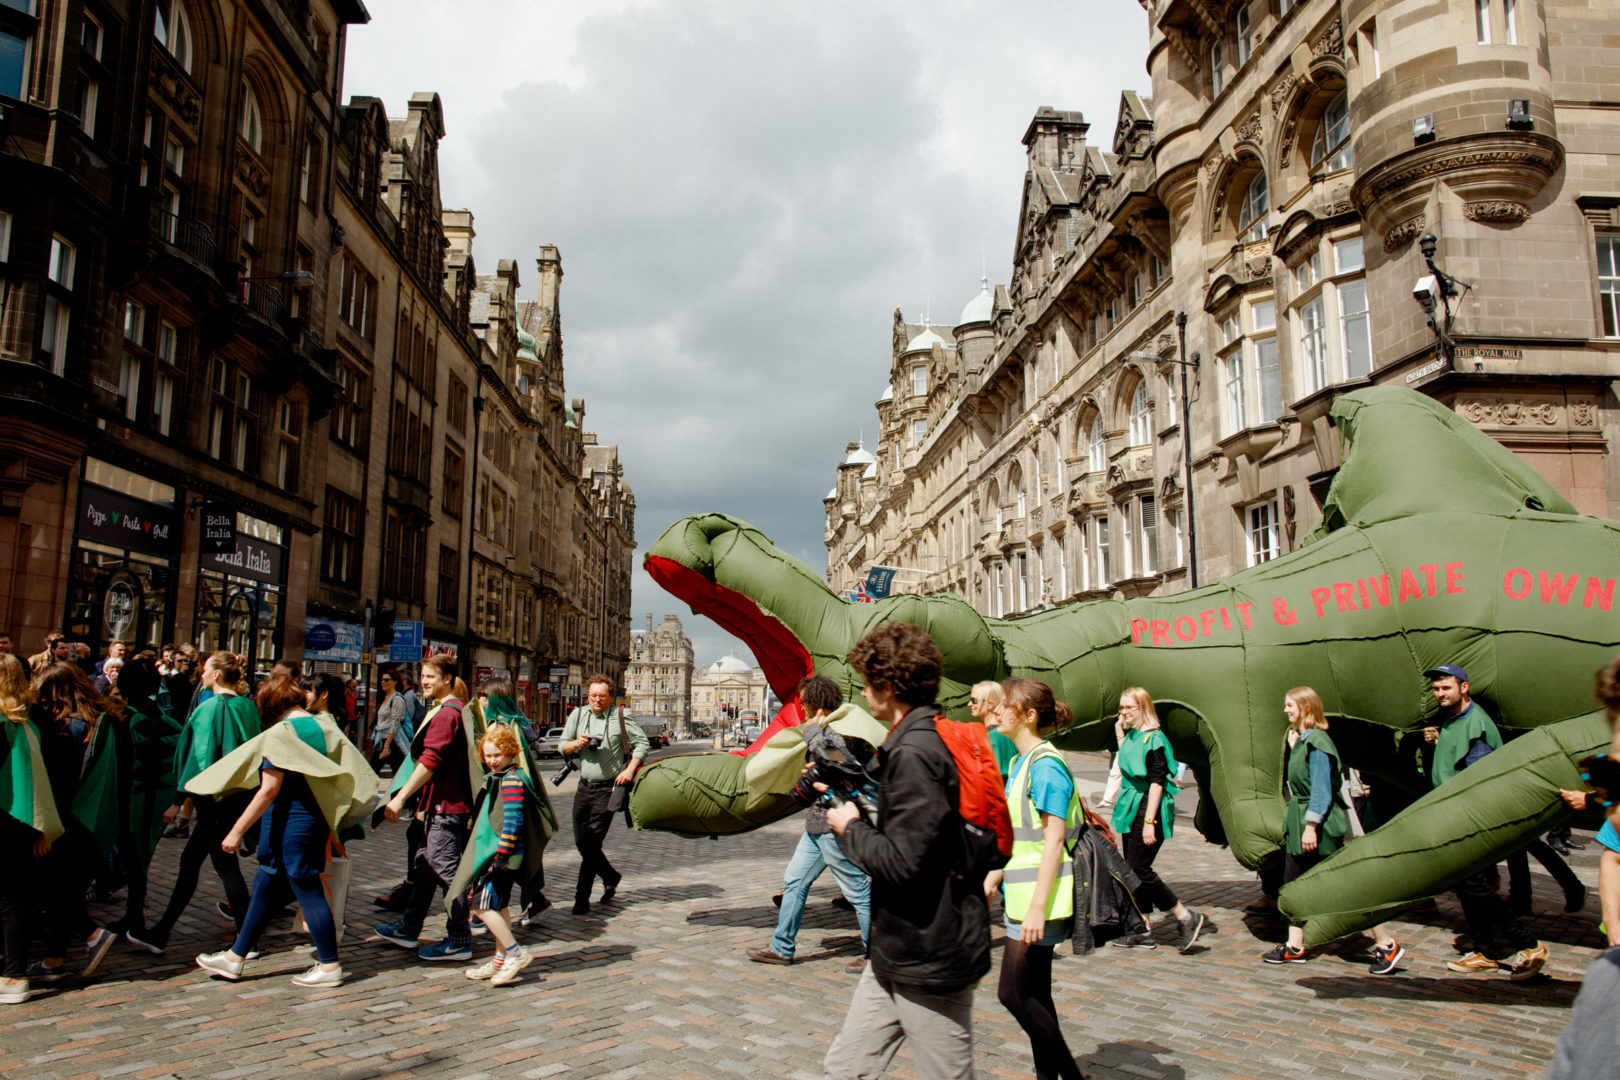 The Dragon of Greed and Private Ownership on the Royal Mile